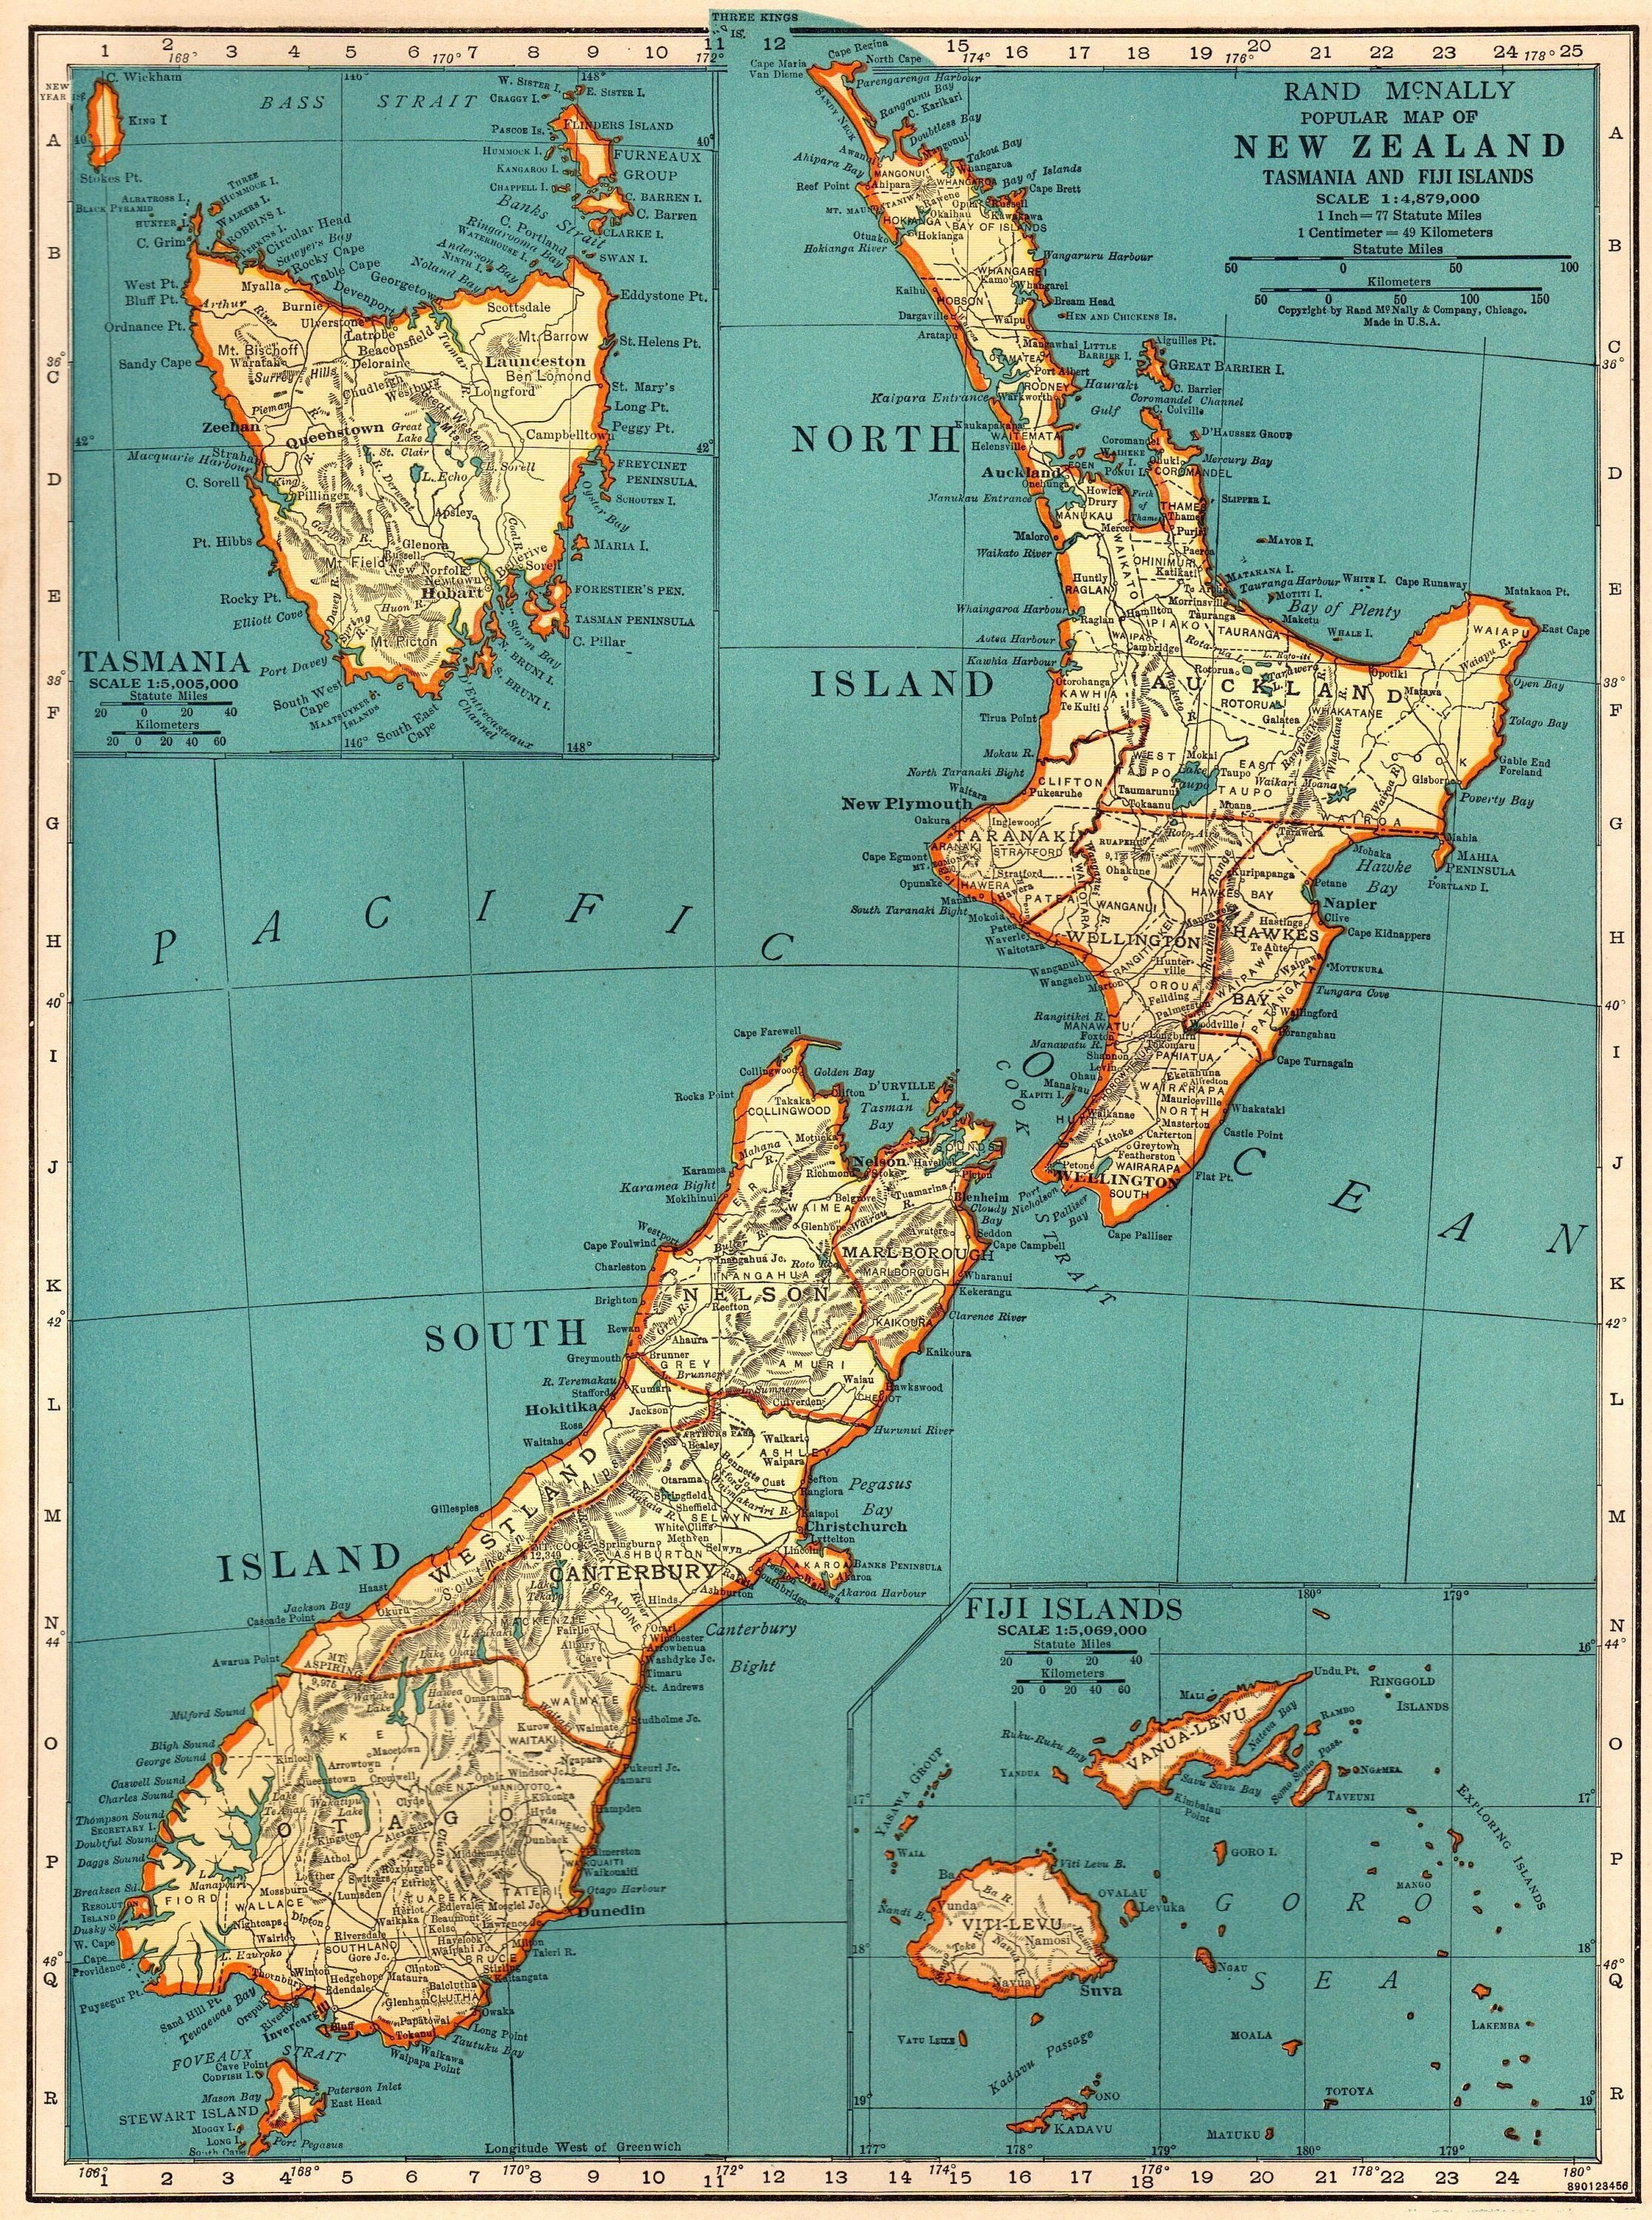 1940 Antique New Zealand Map Vintage Map Of New Zealand Travel Gallery Wall Art Map Gift For Wedding Graduat Map Of New Zealand Travel Gallery Wall Vintage Map